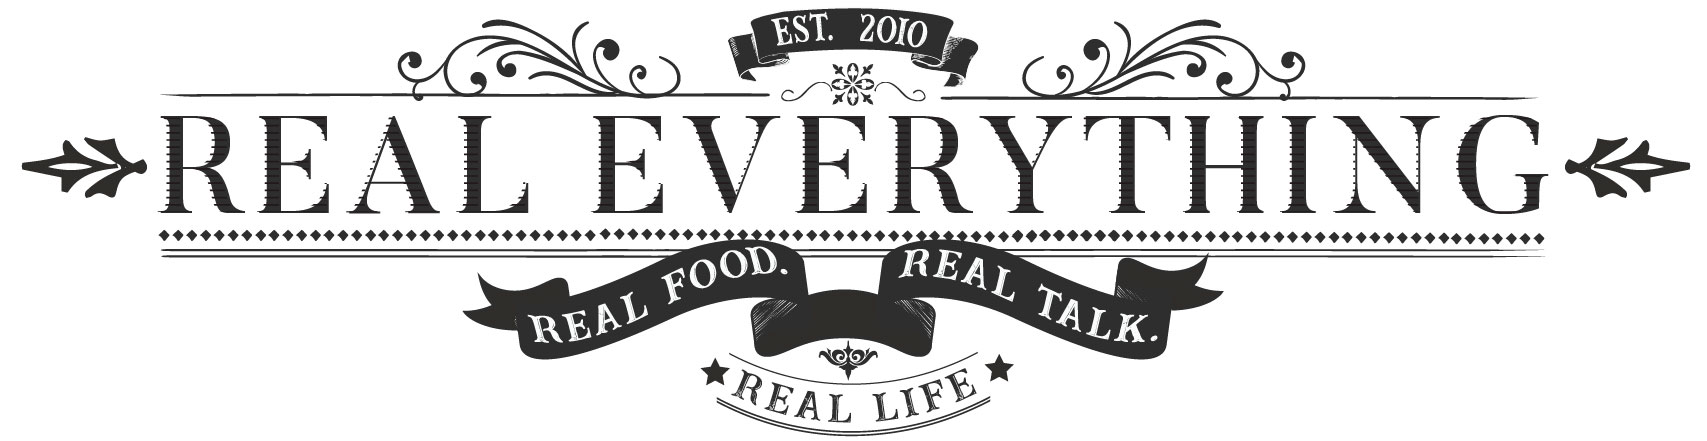 Real Everything